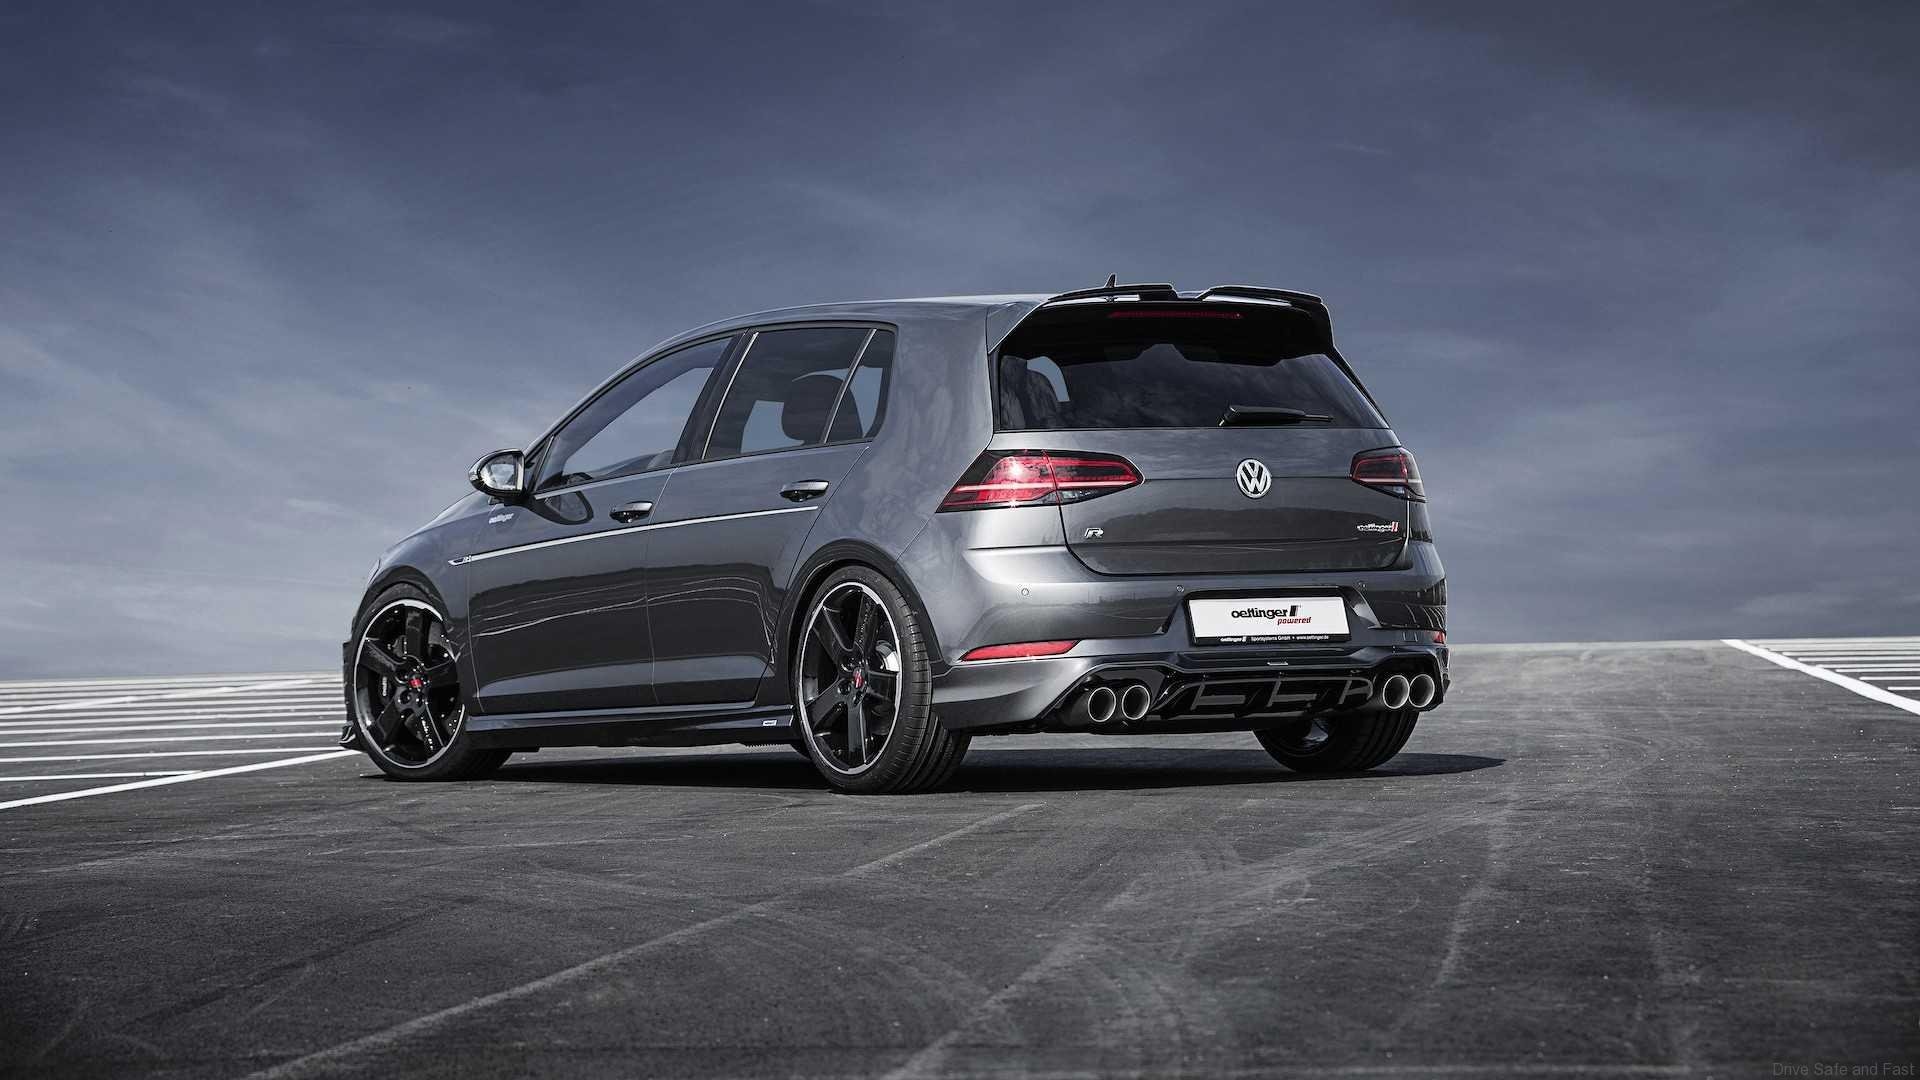 Here is a tuning idea for your Golf GTI – Drive Safe and Fast